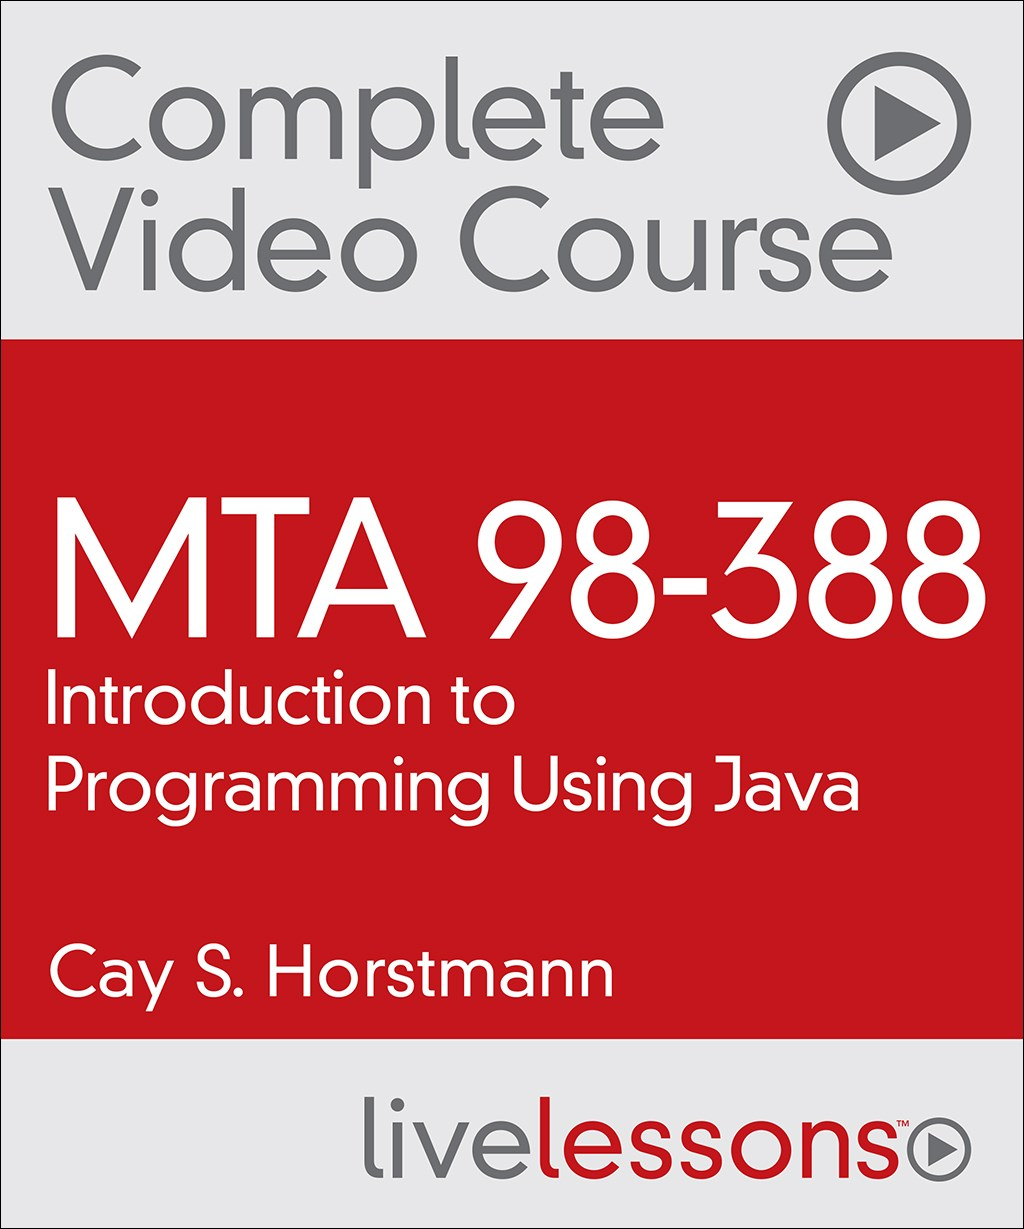 MTA Introduction to Programming Using Java (98-388) LiveLessons